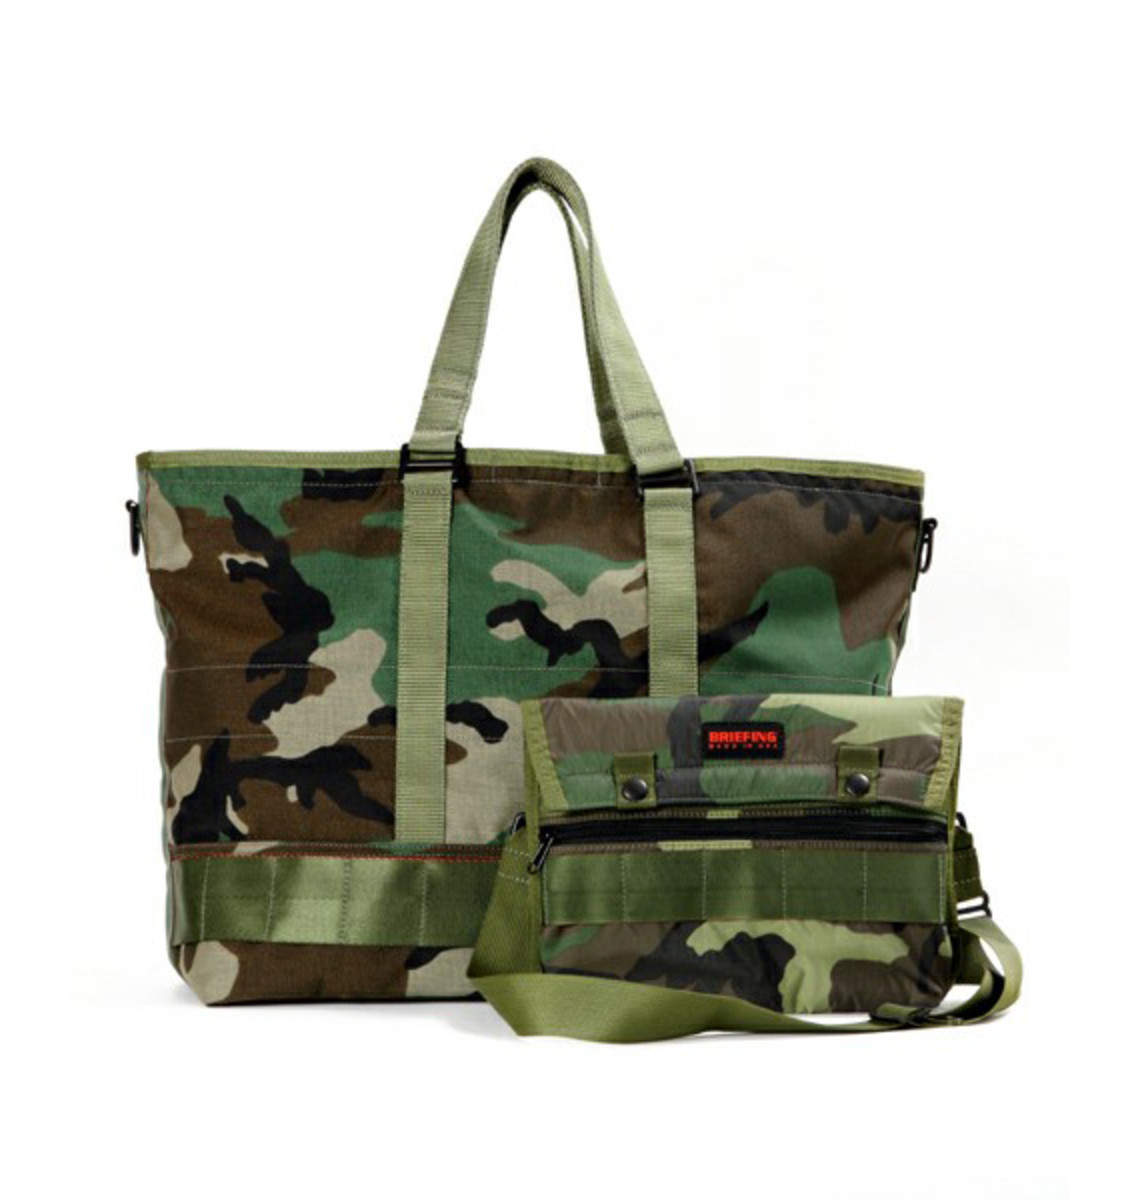 beams-plus-briefing-mil-training-tote-bag-03